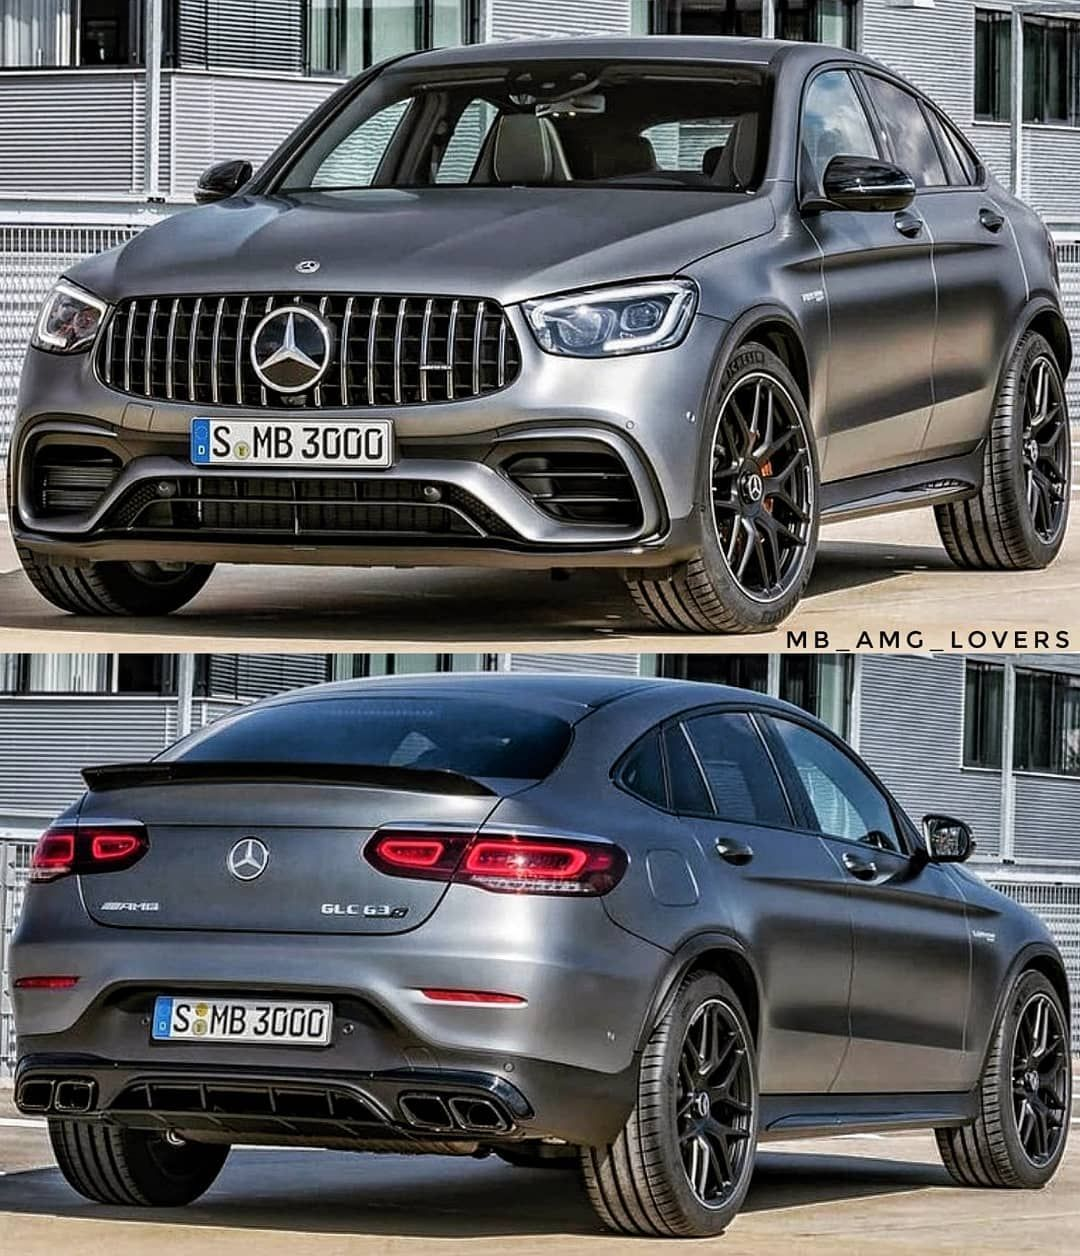 Mercedes Amg C253 Glc 63 S Coupe Facelift Courtesy Daimler Ag